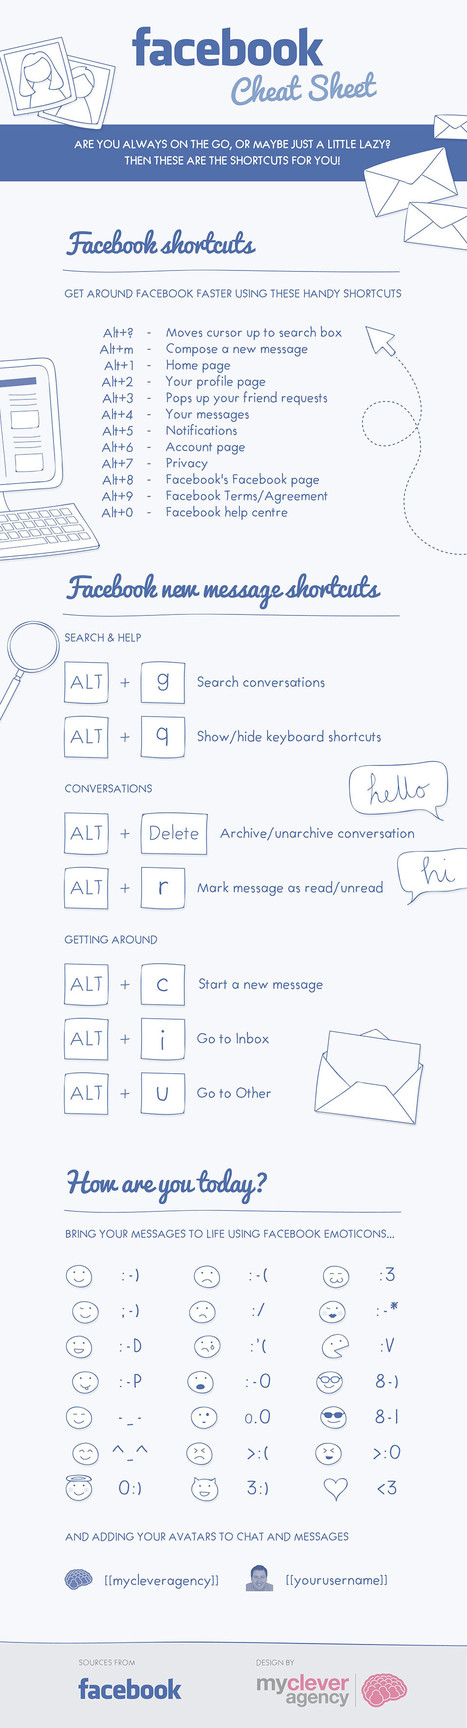 Facebook Cheat Sheet [INFOGRAPHIC] | The Eélan Way | Scoop.it